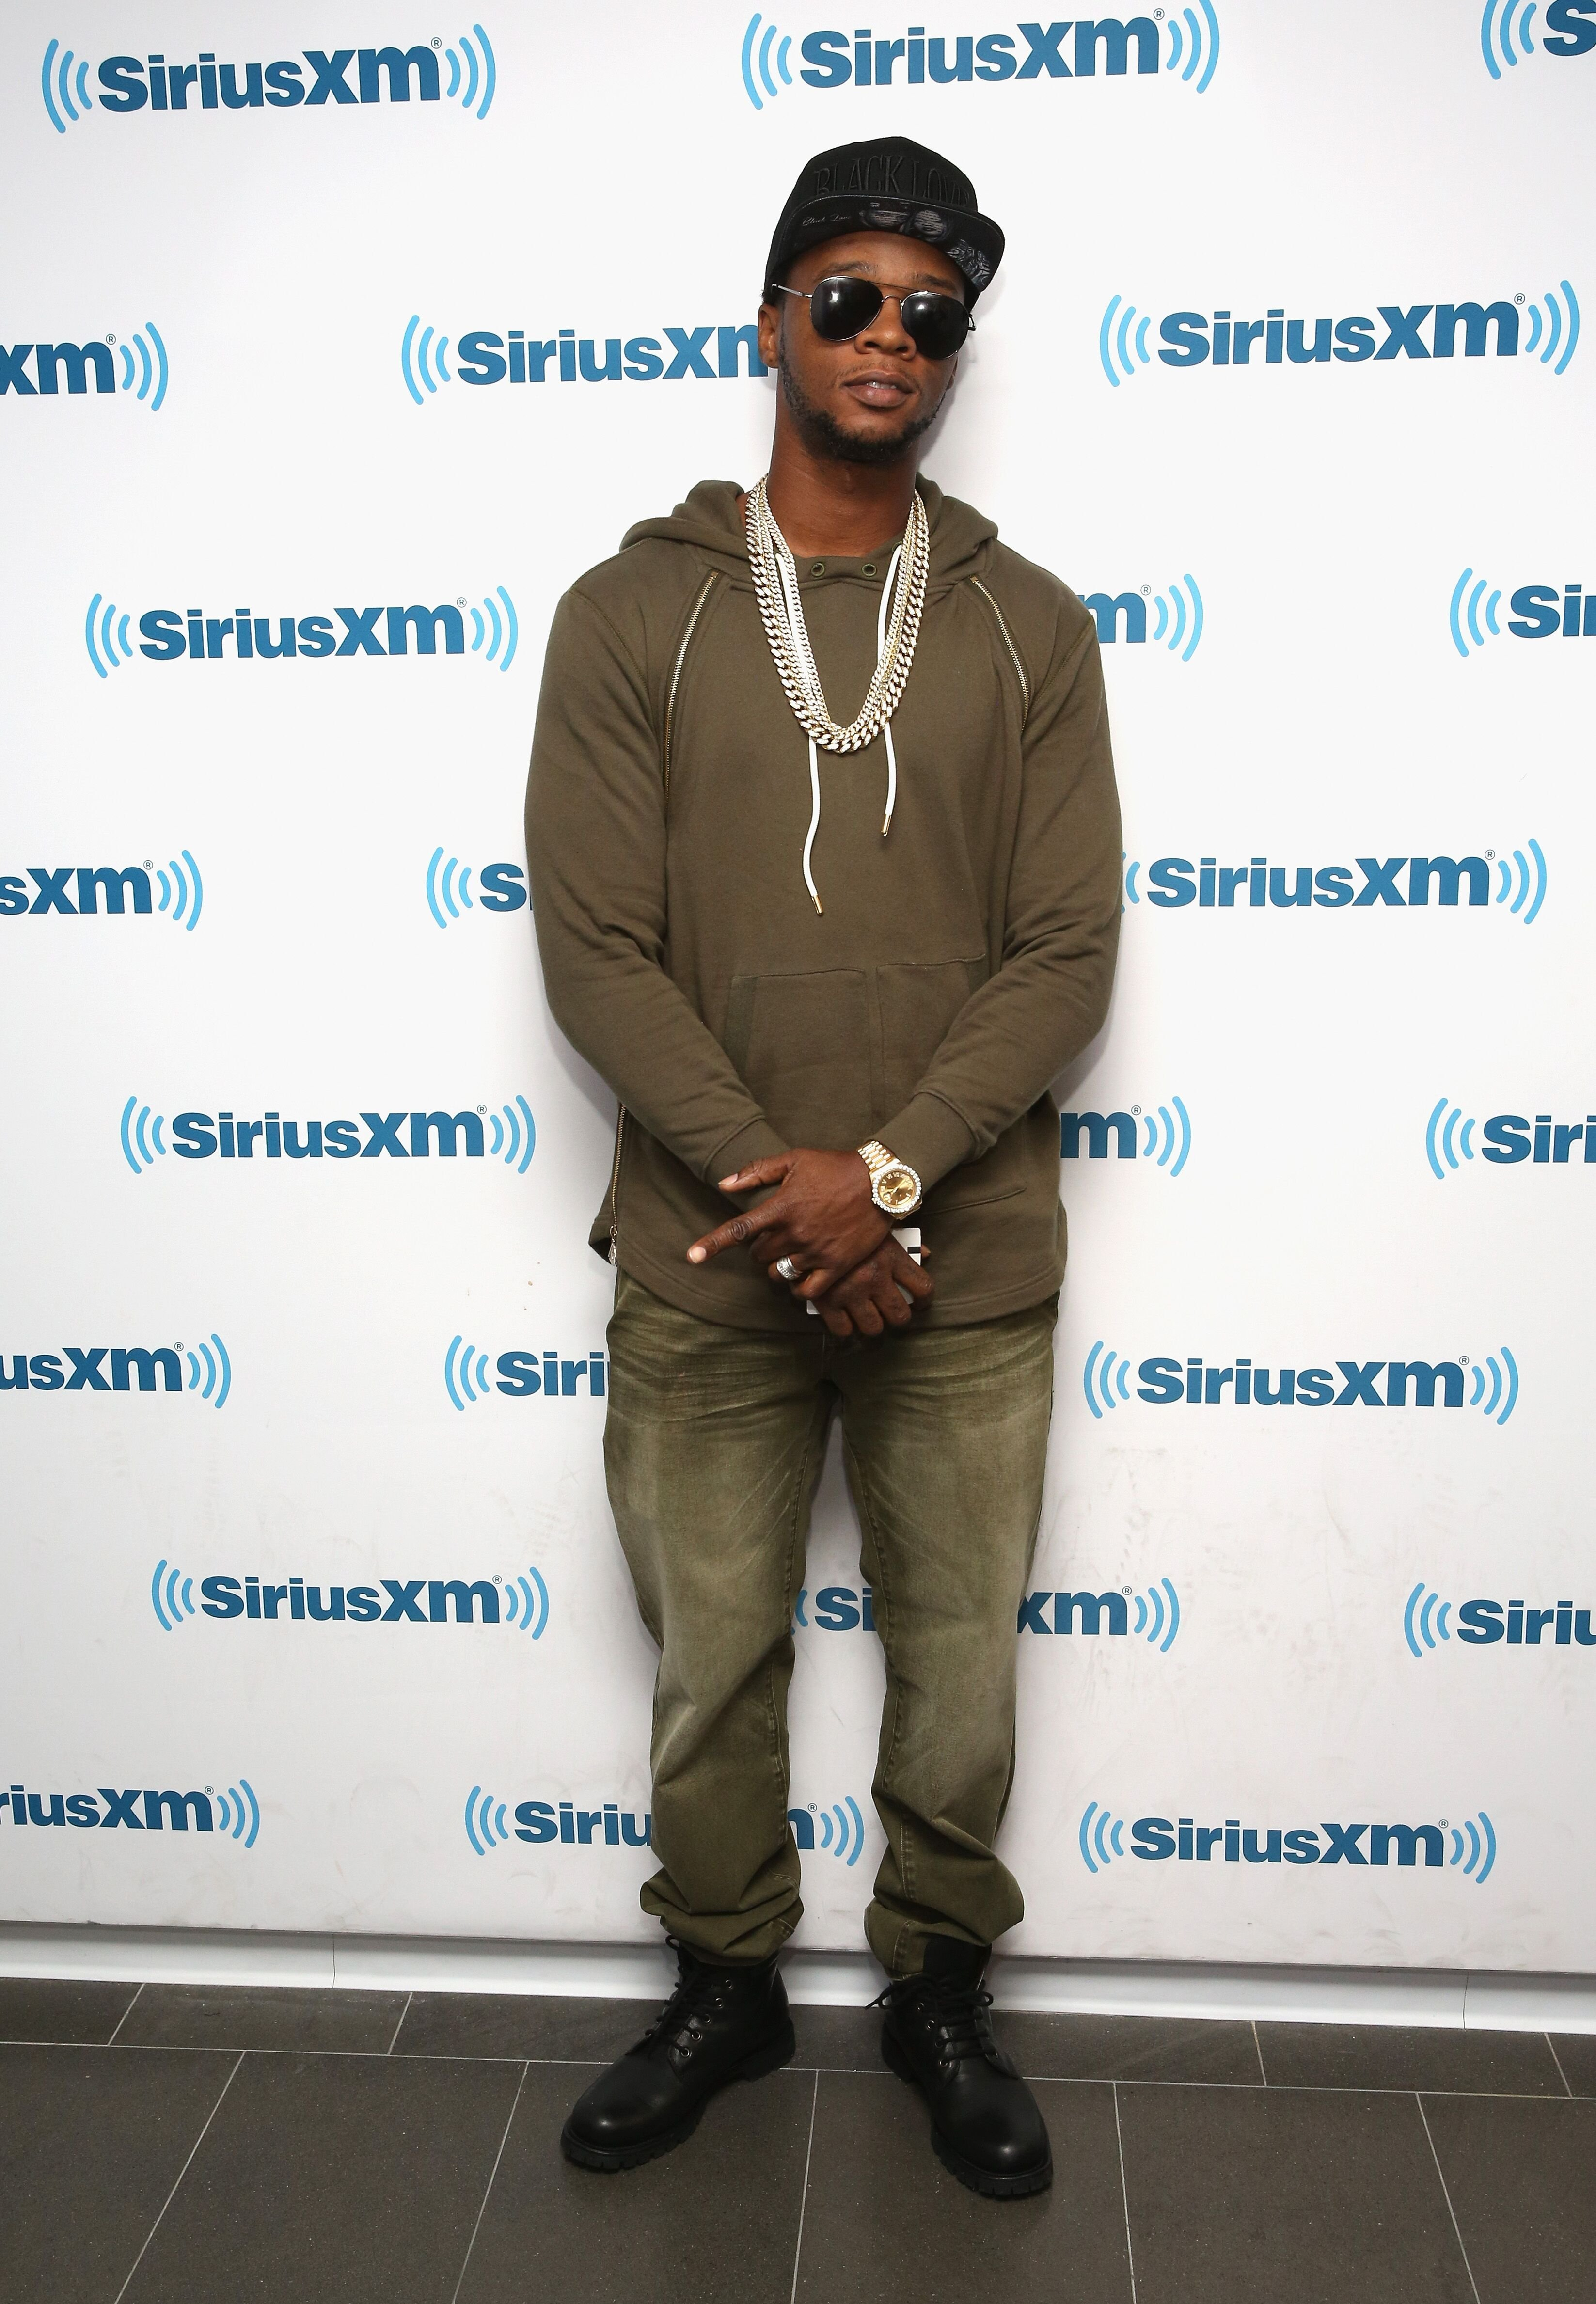 Rapper Papoose, whose real name is Shamele Mackie, visits the SiriusXM Studio on October 4, 2016 in New York City.  | Photo: Getty Images